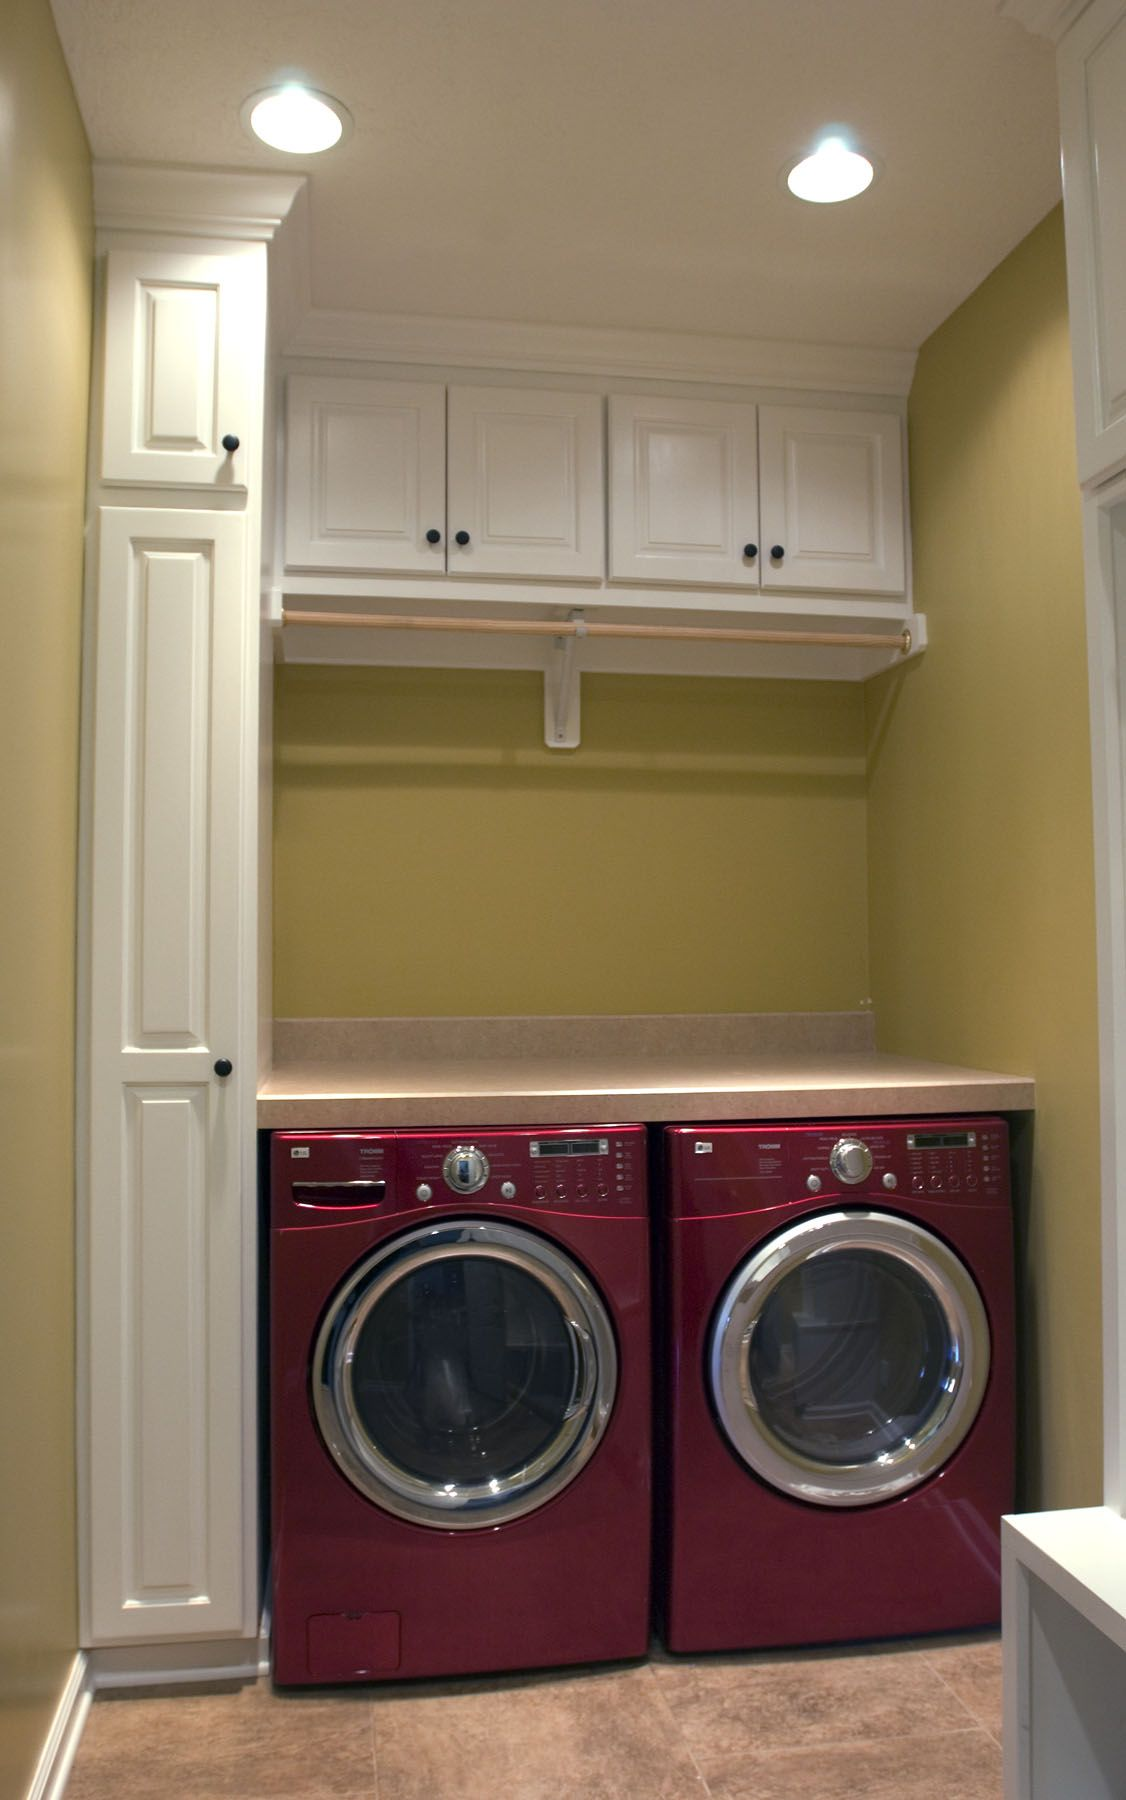 Small laundry rooms enlarged laundry room new mudroom lockers case - Washer dryers for small spaces ideas ...